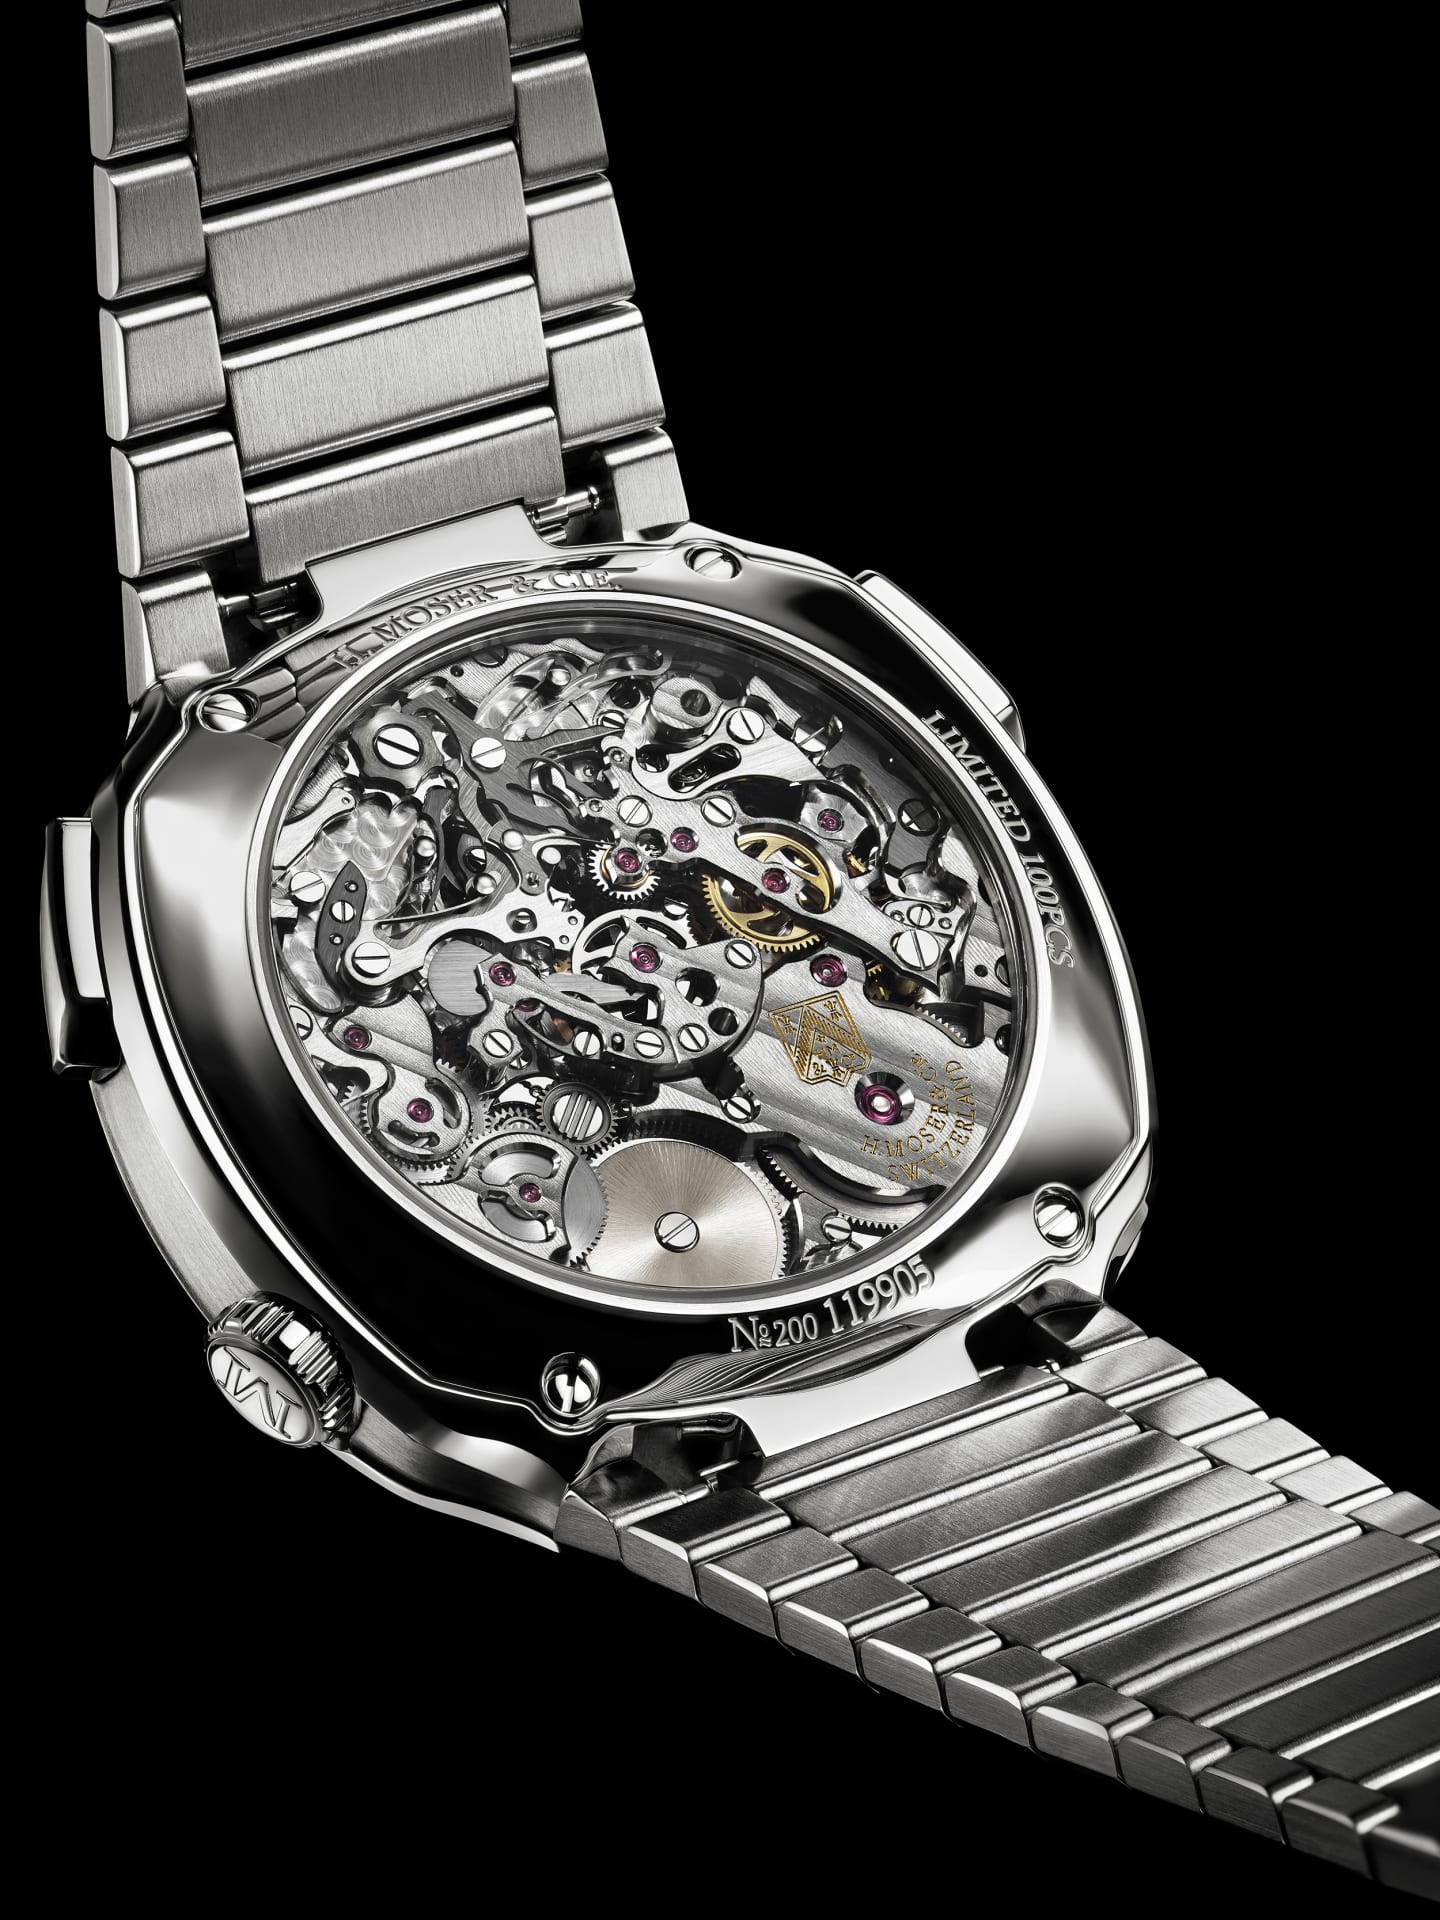 h moser cie enters crowded market for premium steel sports watches h moser cie enters crowded market